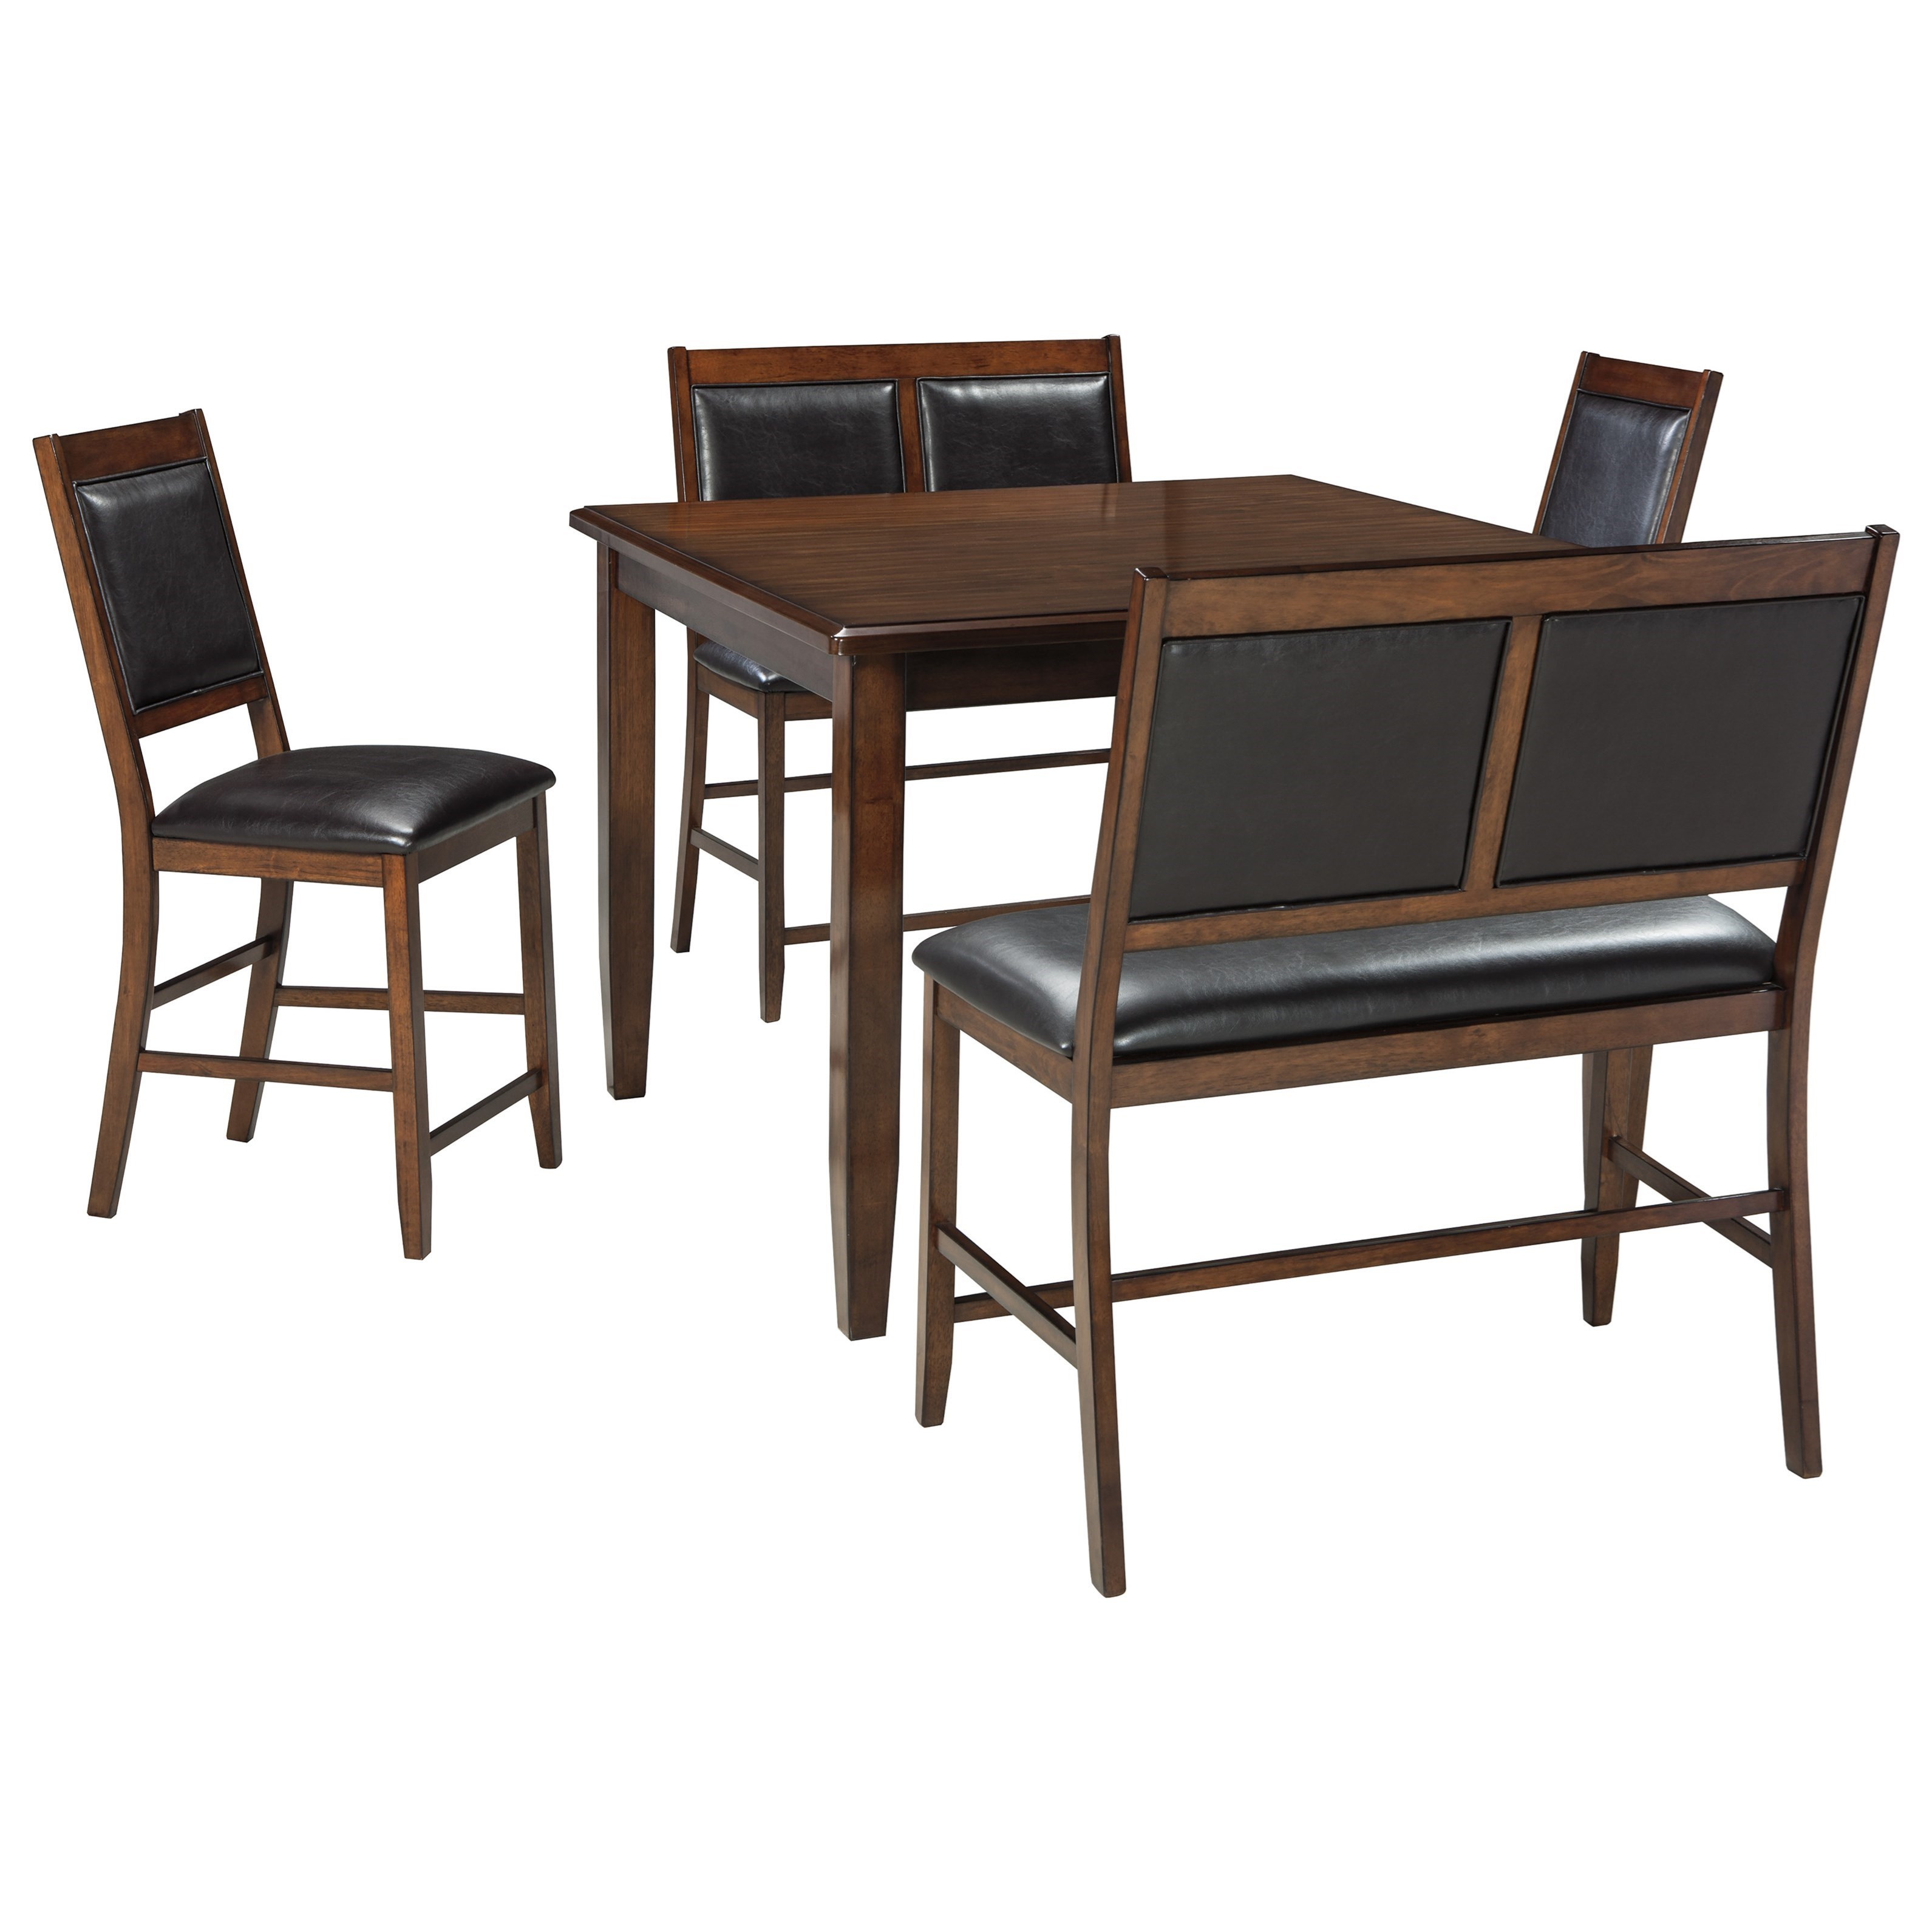 Biscotti and Panini 5-Piece Dining Room Counter Table Set by StyleLine at EFO Furniture Outlet